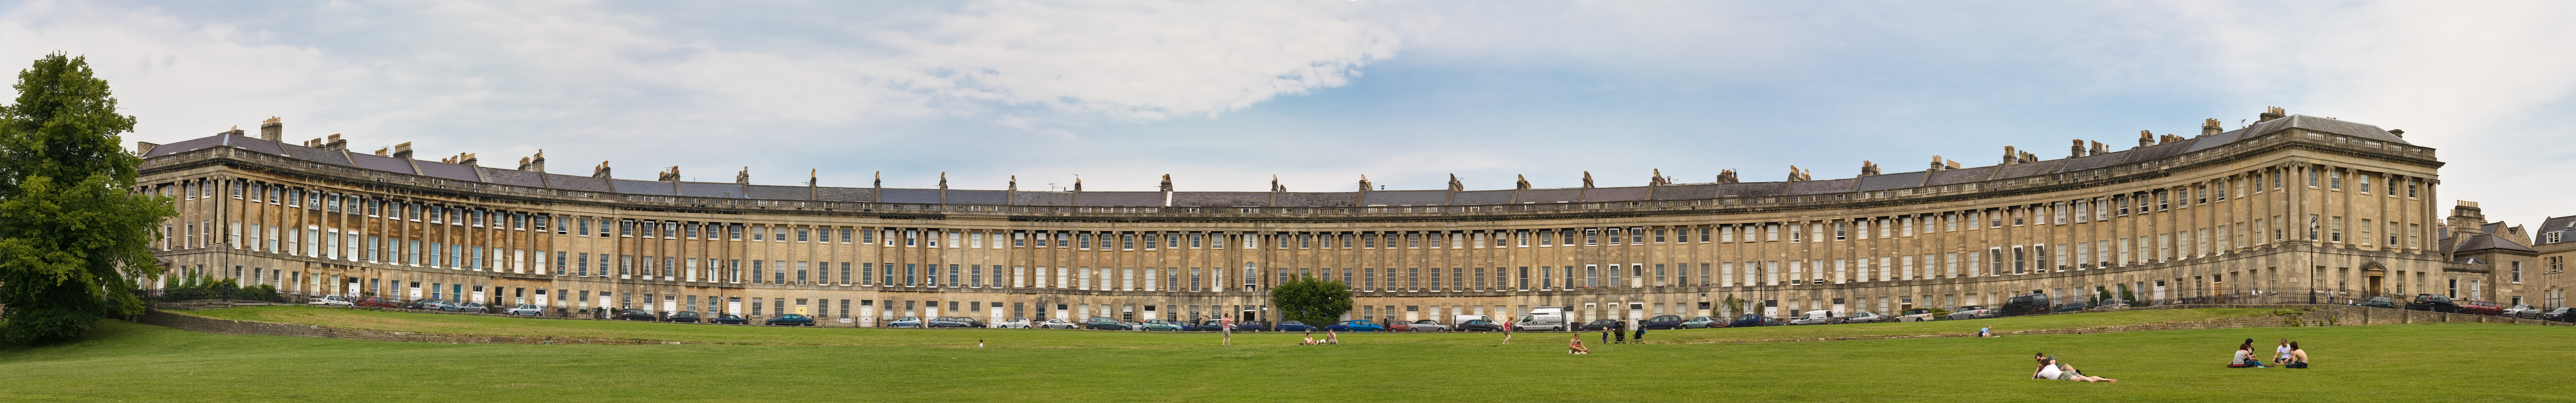 File royal crescent in bath england july wikimedia commons - Image of bath room ...